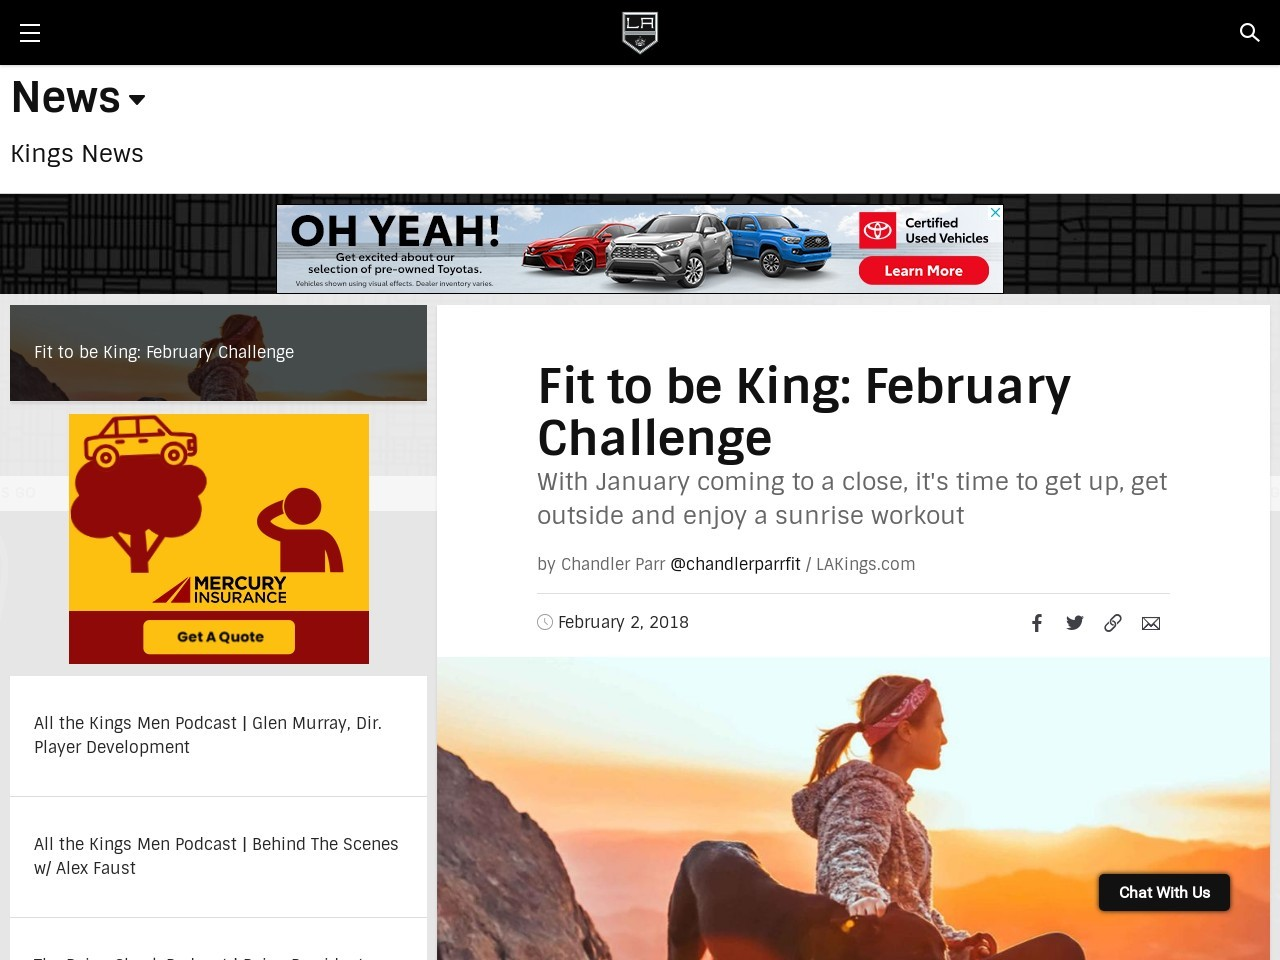 Fit to be King: February Challenge